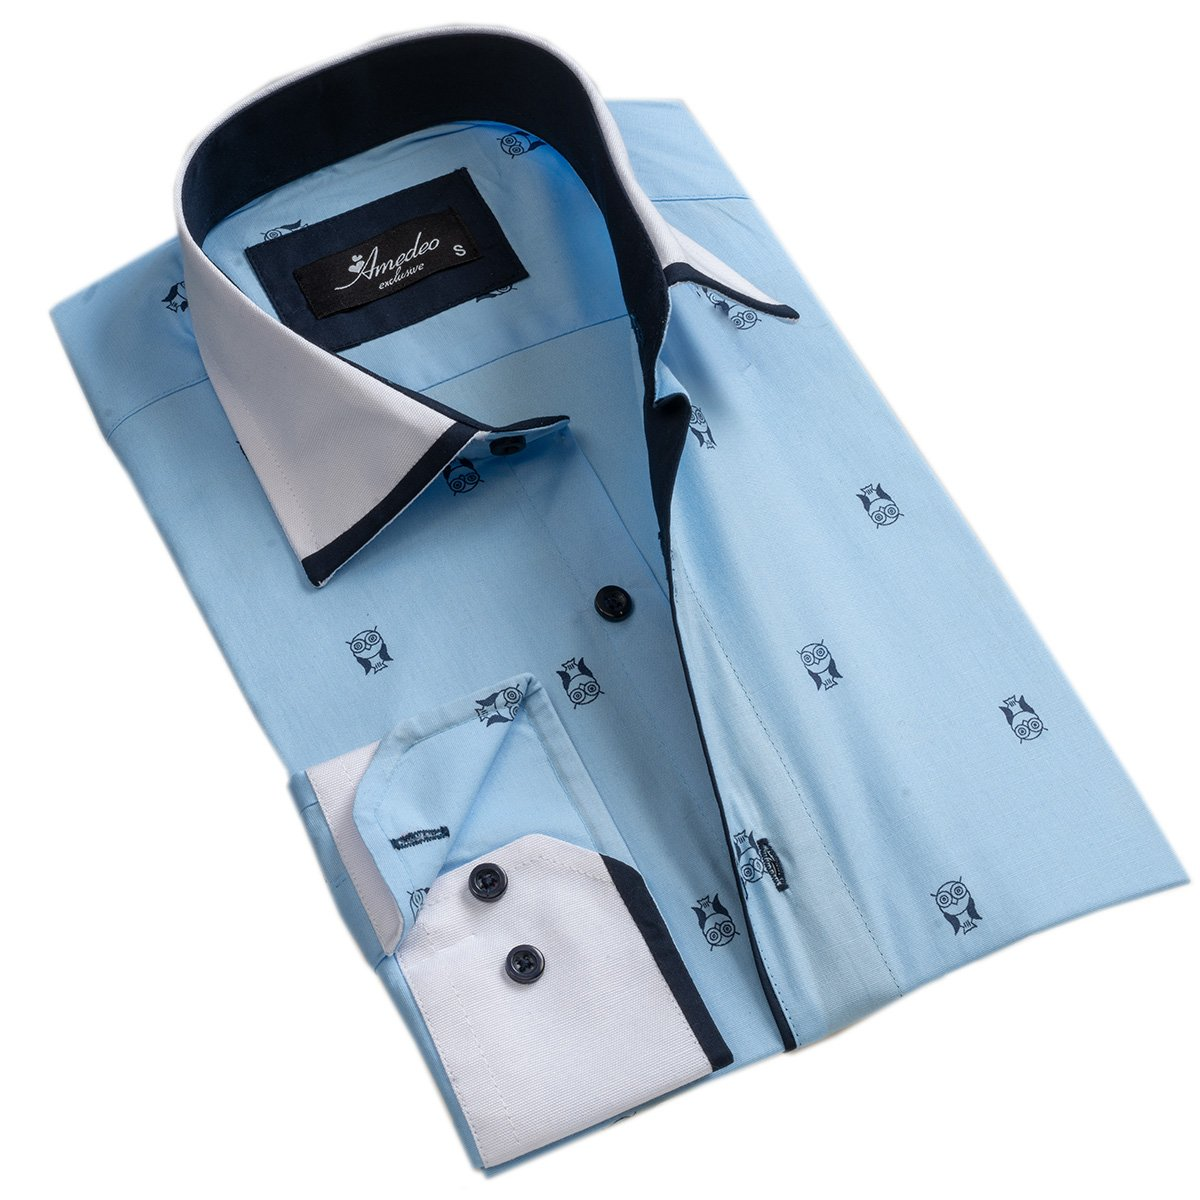 Light Blue w/ Navy Blue Mens Slim Fit Designer Dress Shirt - tailored Cotton Shirts for Work and - Amedeo Exclusive